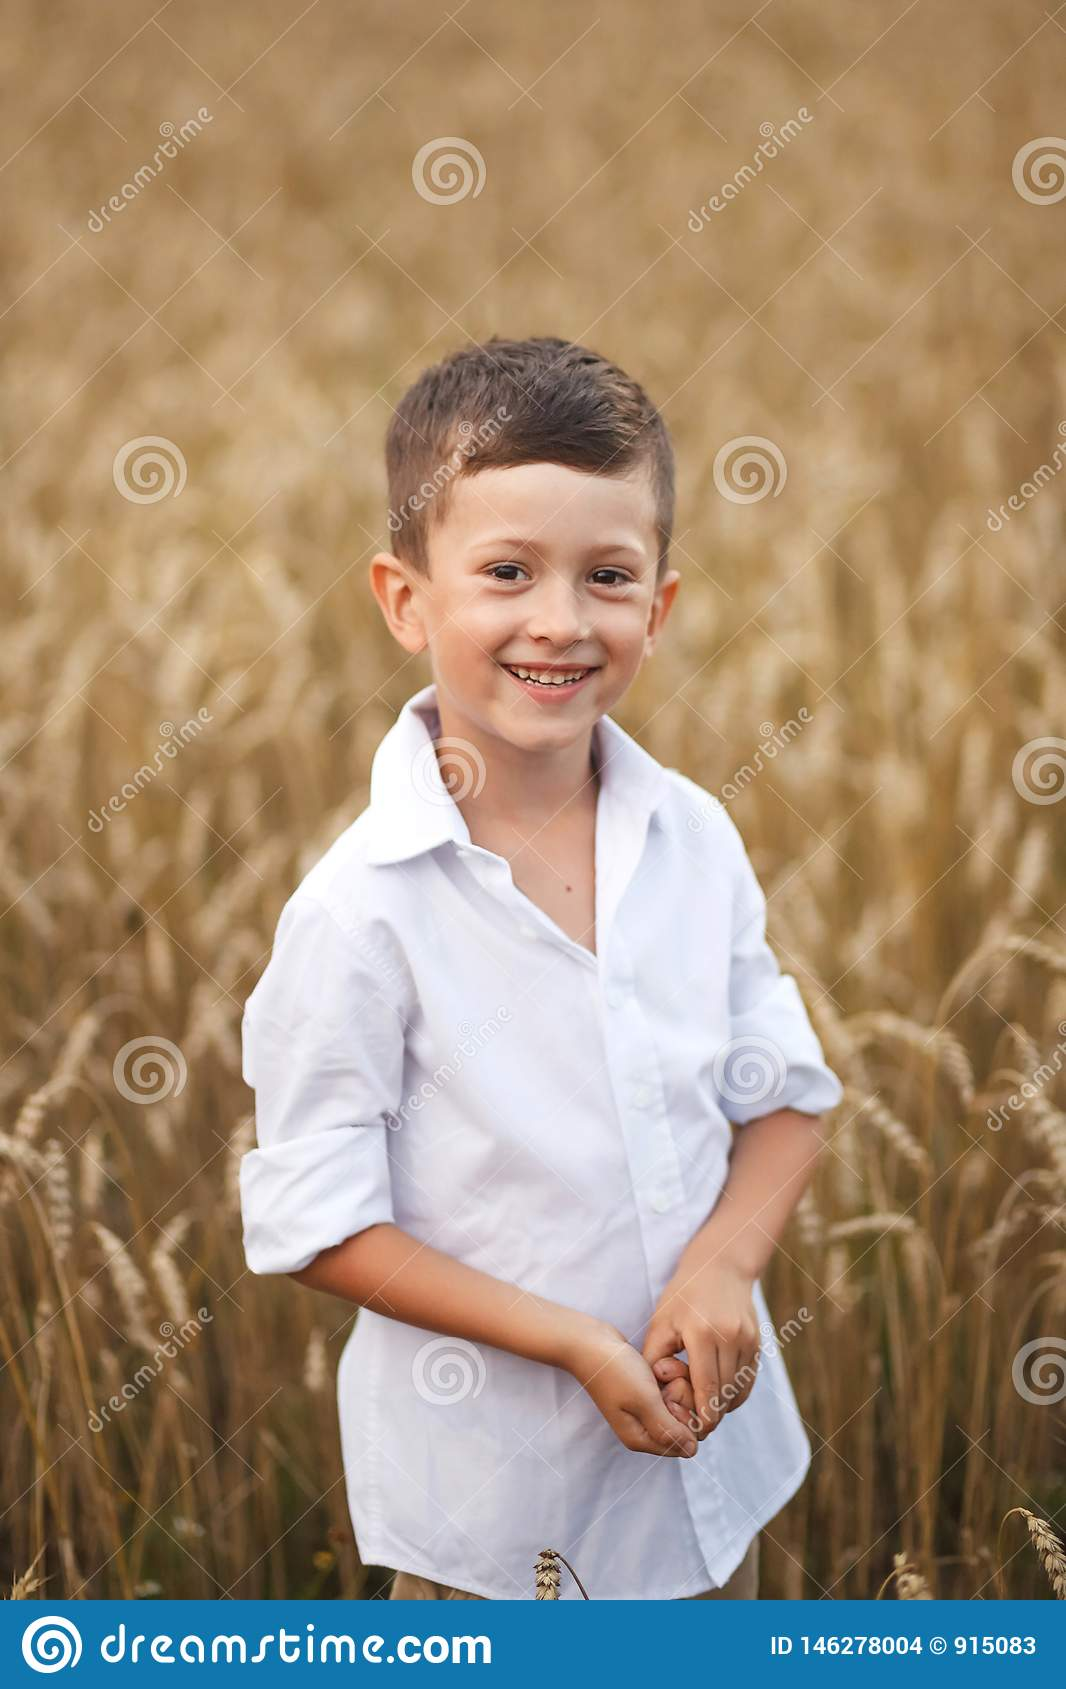 Smiling boy in summer field. The concept of freedom and happy childhood